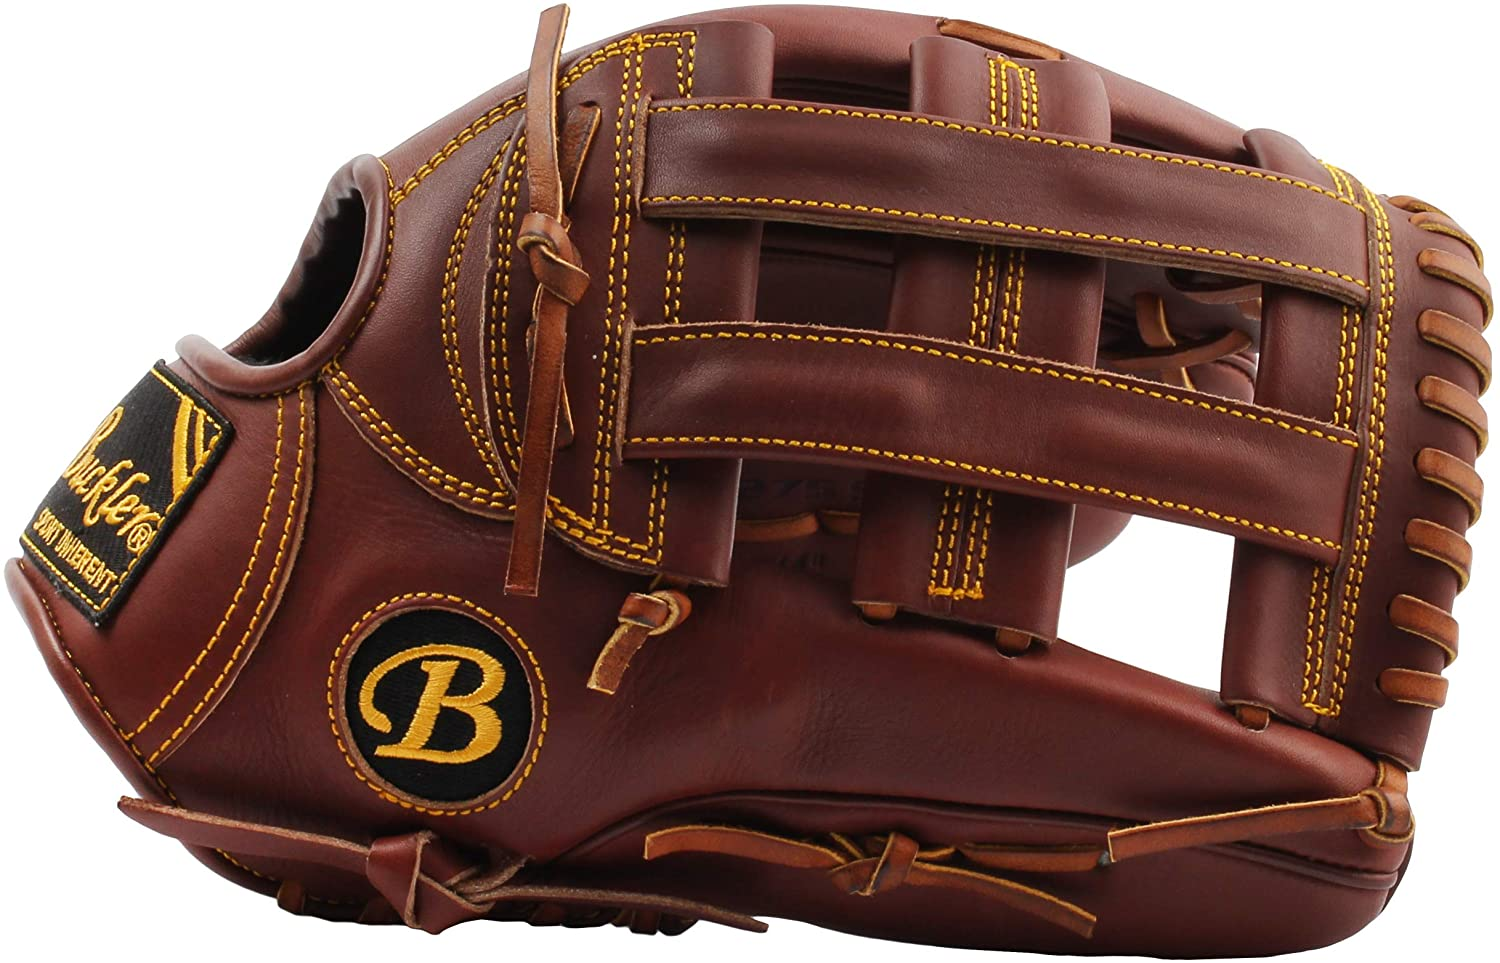 BUCKLER 'Core' Series - KIP Leather Baseball Gloves - Outfield - 12.75